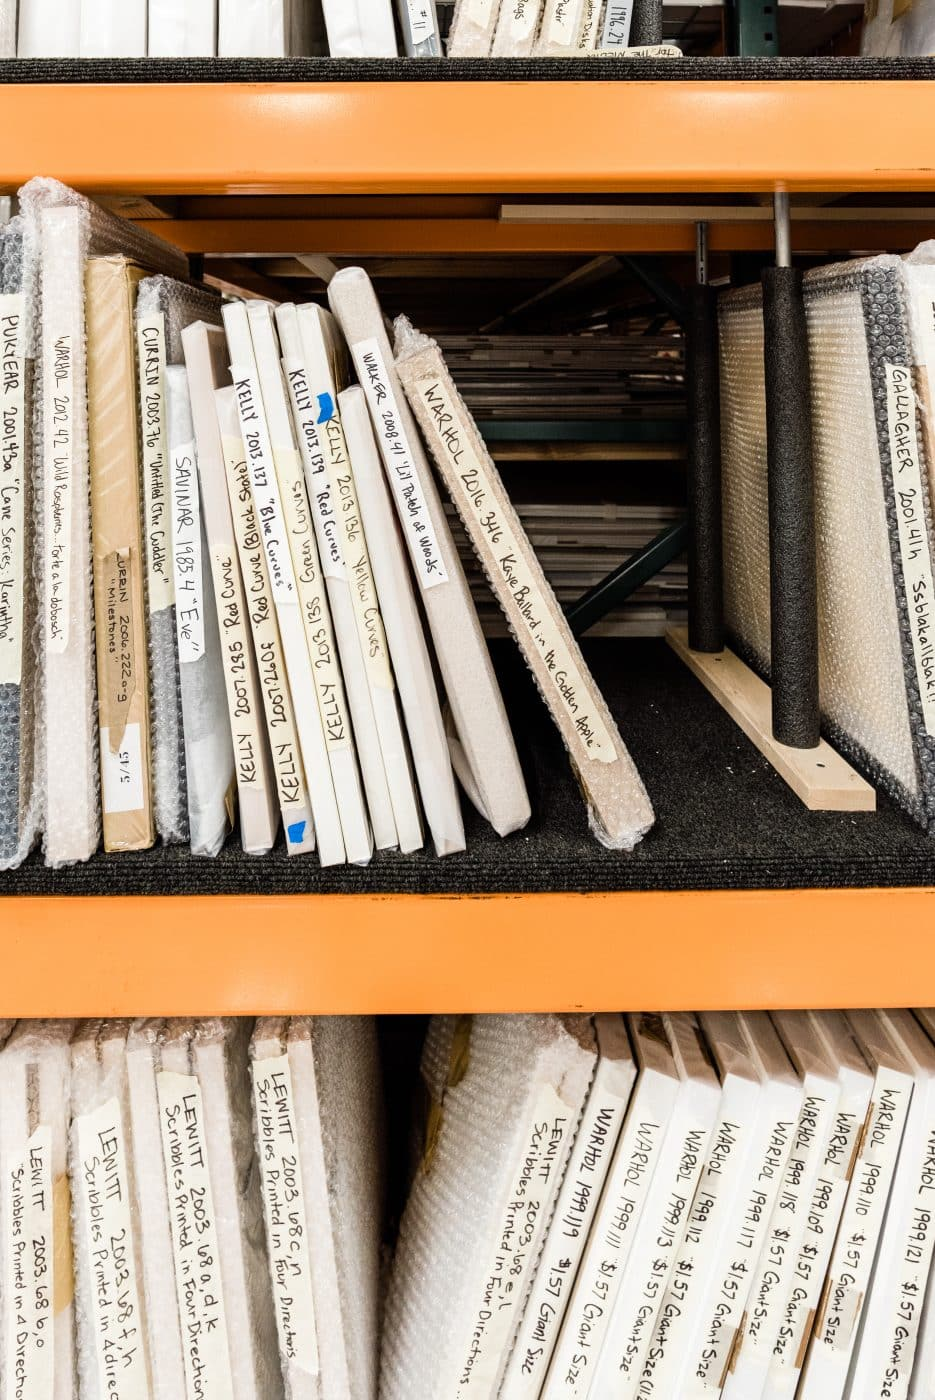 Warehouse shelves storing art from the collections of Schnitzer and the Jordan Schnitzer Family Foundation.